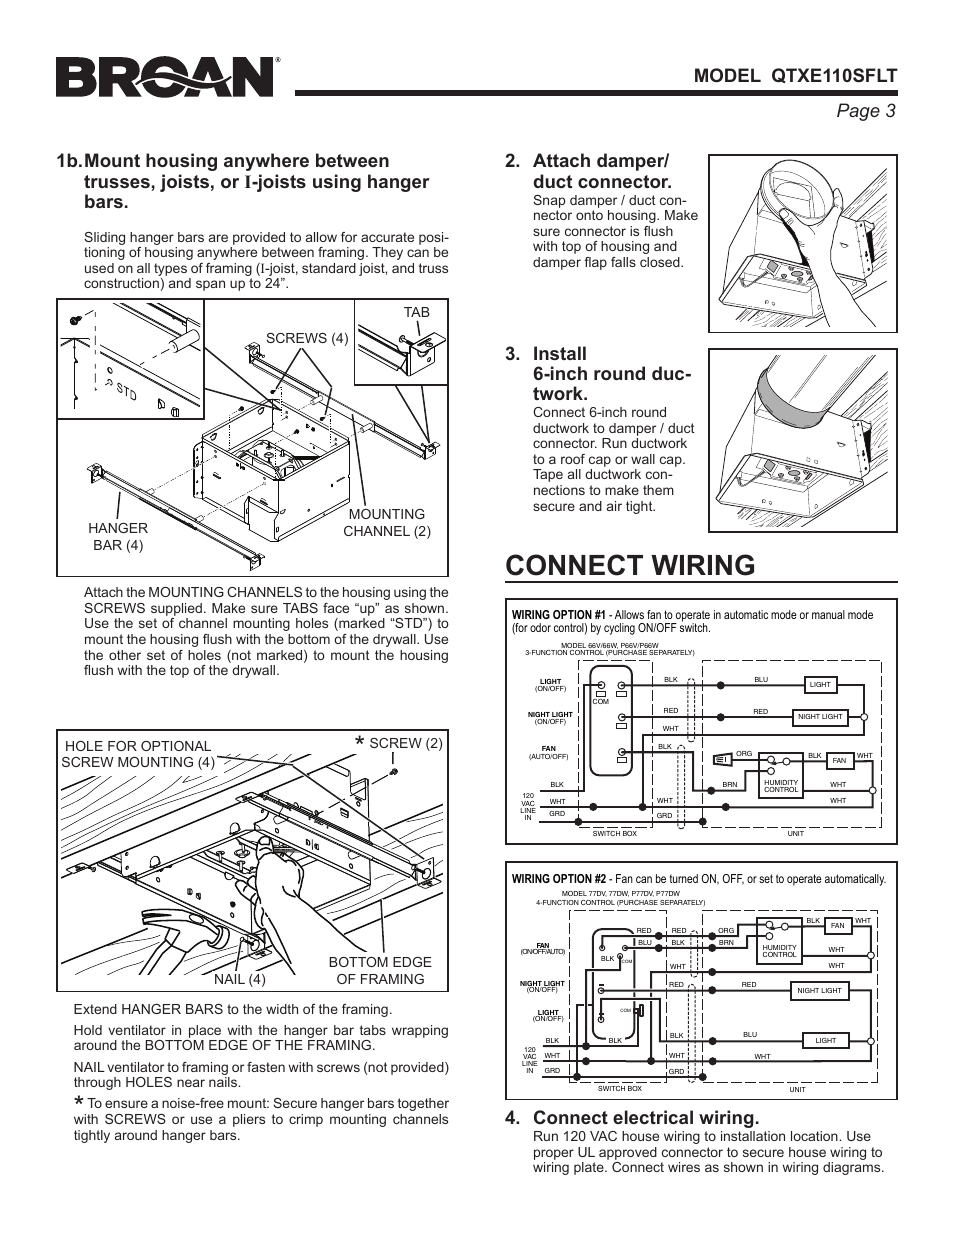 connect wiring connect electrical wiring attach damper duct rh manualsdir com Trane Wiring Diagrams Hunter Fan Wiring Diagram